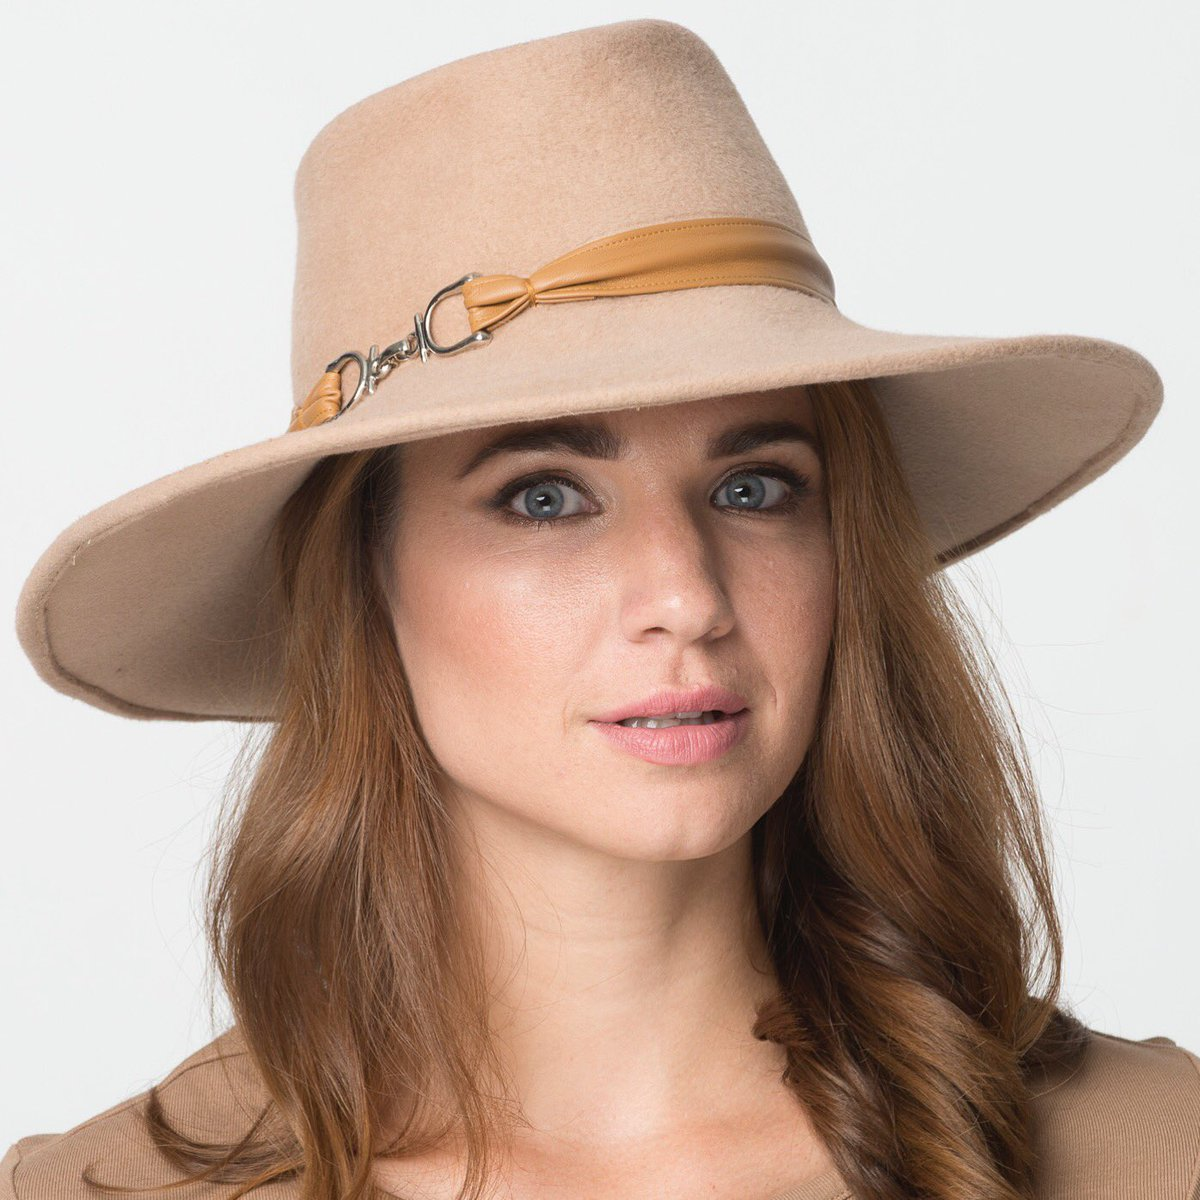 #newyorkmarketweek Come&see #designerhats #millinerycollection From #casual #streetwear -#eventstyles 212-279-1775